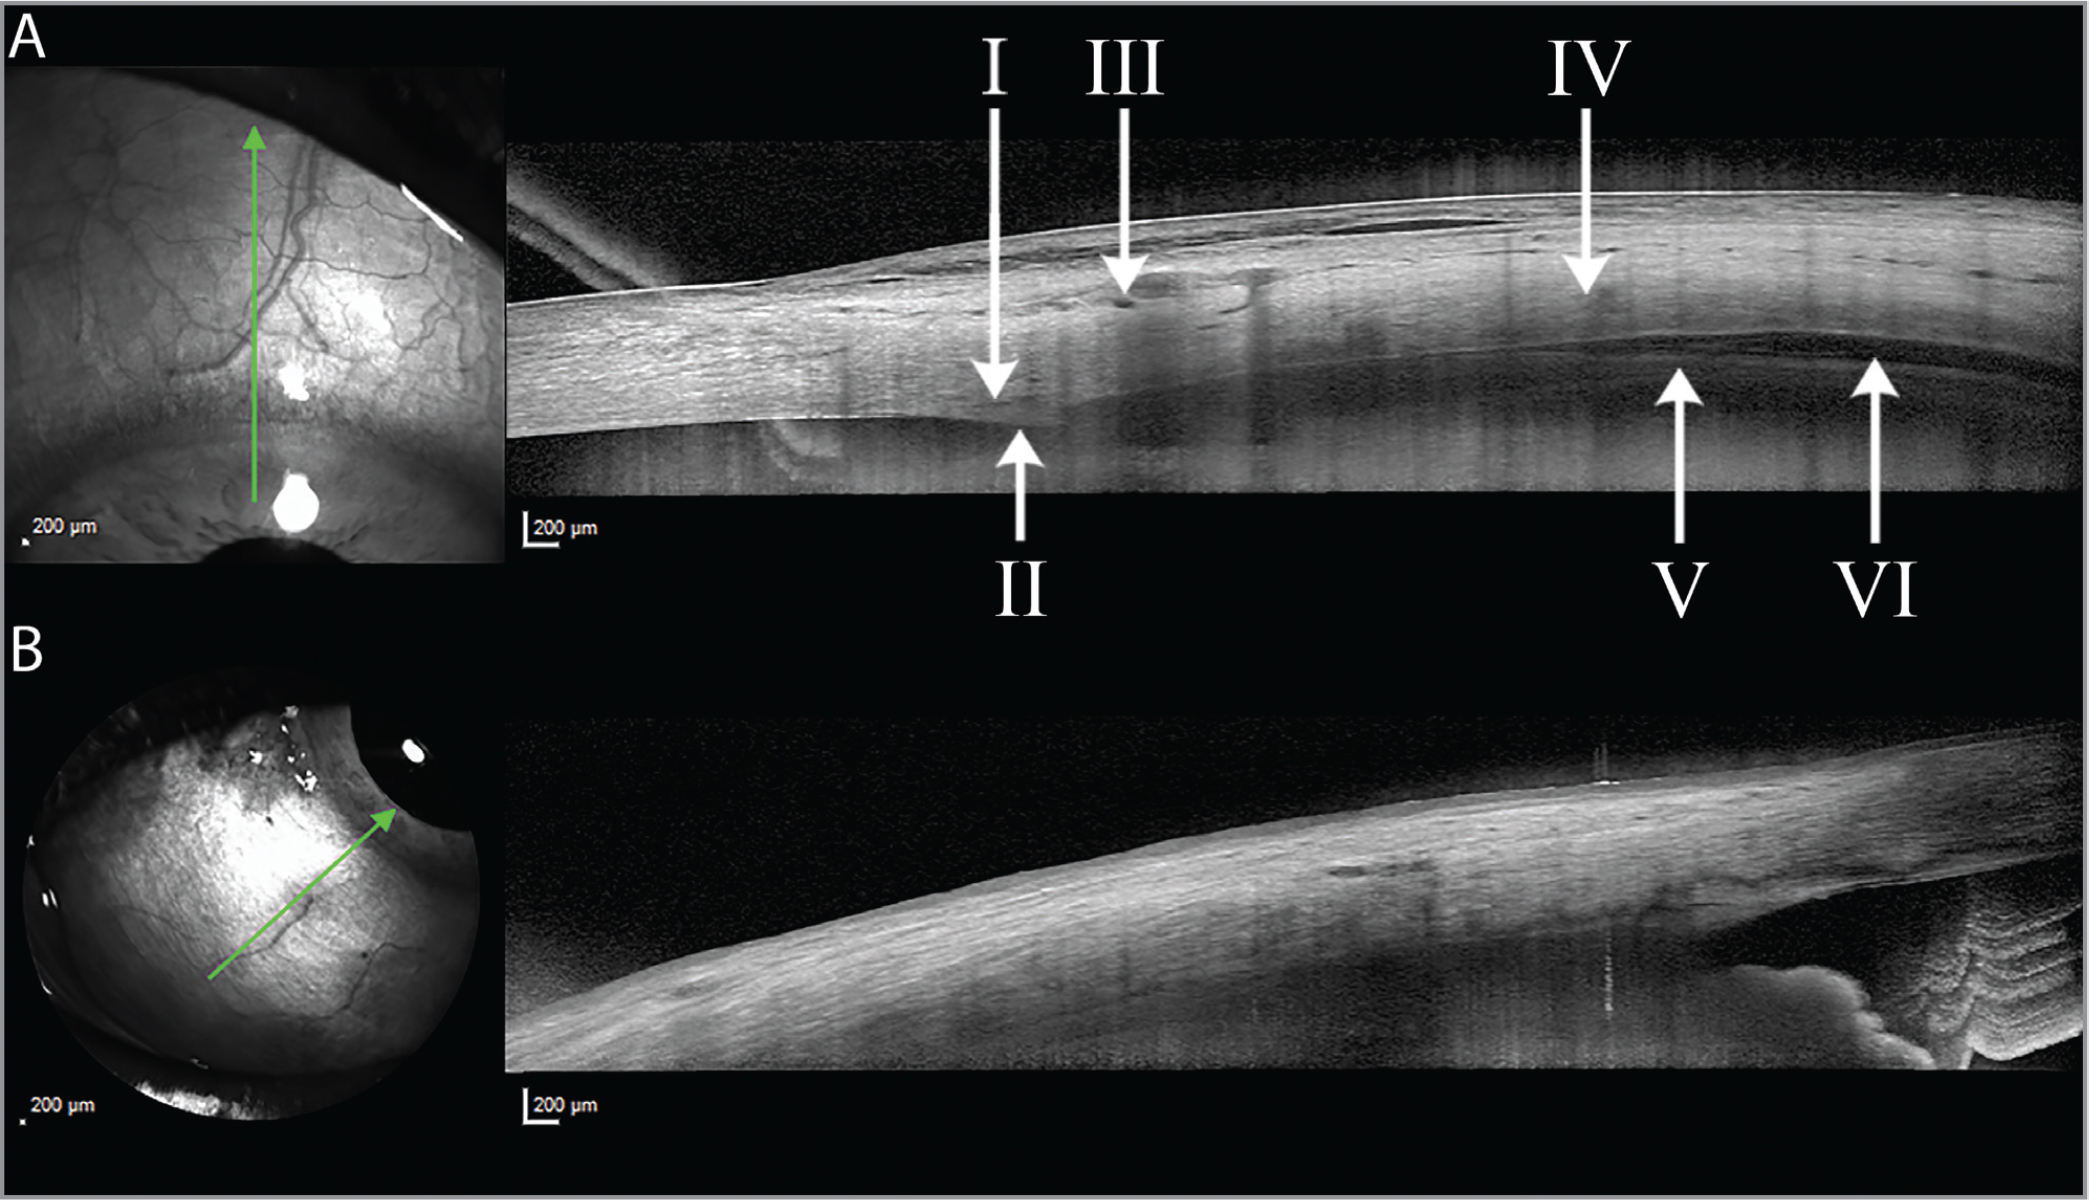 Anterior segment optical coherence tomography (AS-OCT) scan of the superior quadrant of a study patient after receiving a suprachoroidal injection of CLS-TA (A). From left to right: Schlemm's canal (I), scleral spur (II) episcleral vasculature (III), sclera (IV), choroid (V), suprachoroidal space (VI). Example of an AS-OCT scan excluded from analysis due to insufficient definition of the choroid (B).